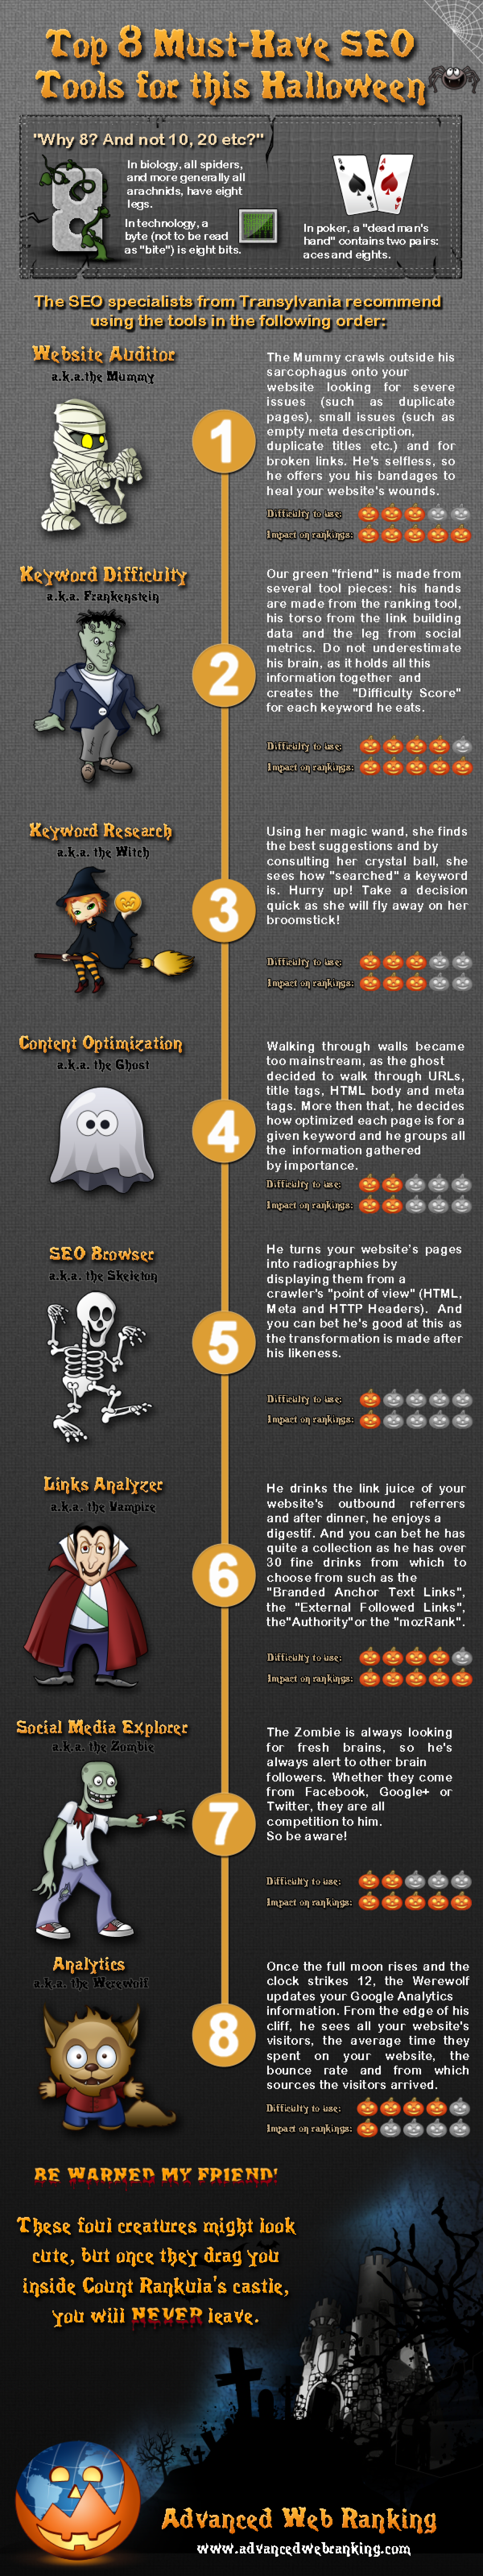 Top 8 Must-Have SEO Tools for This Halloween Infographic